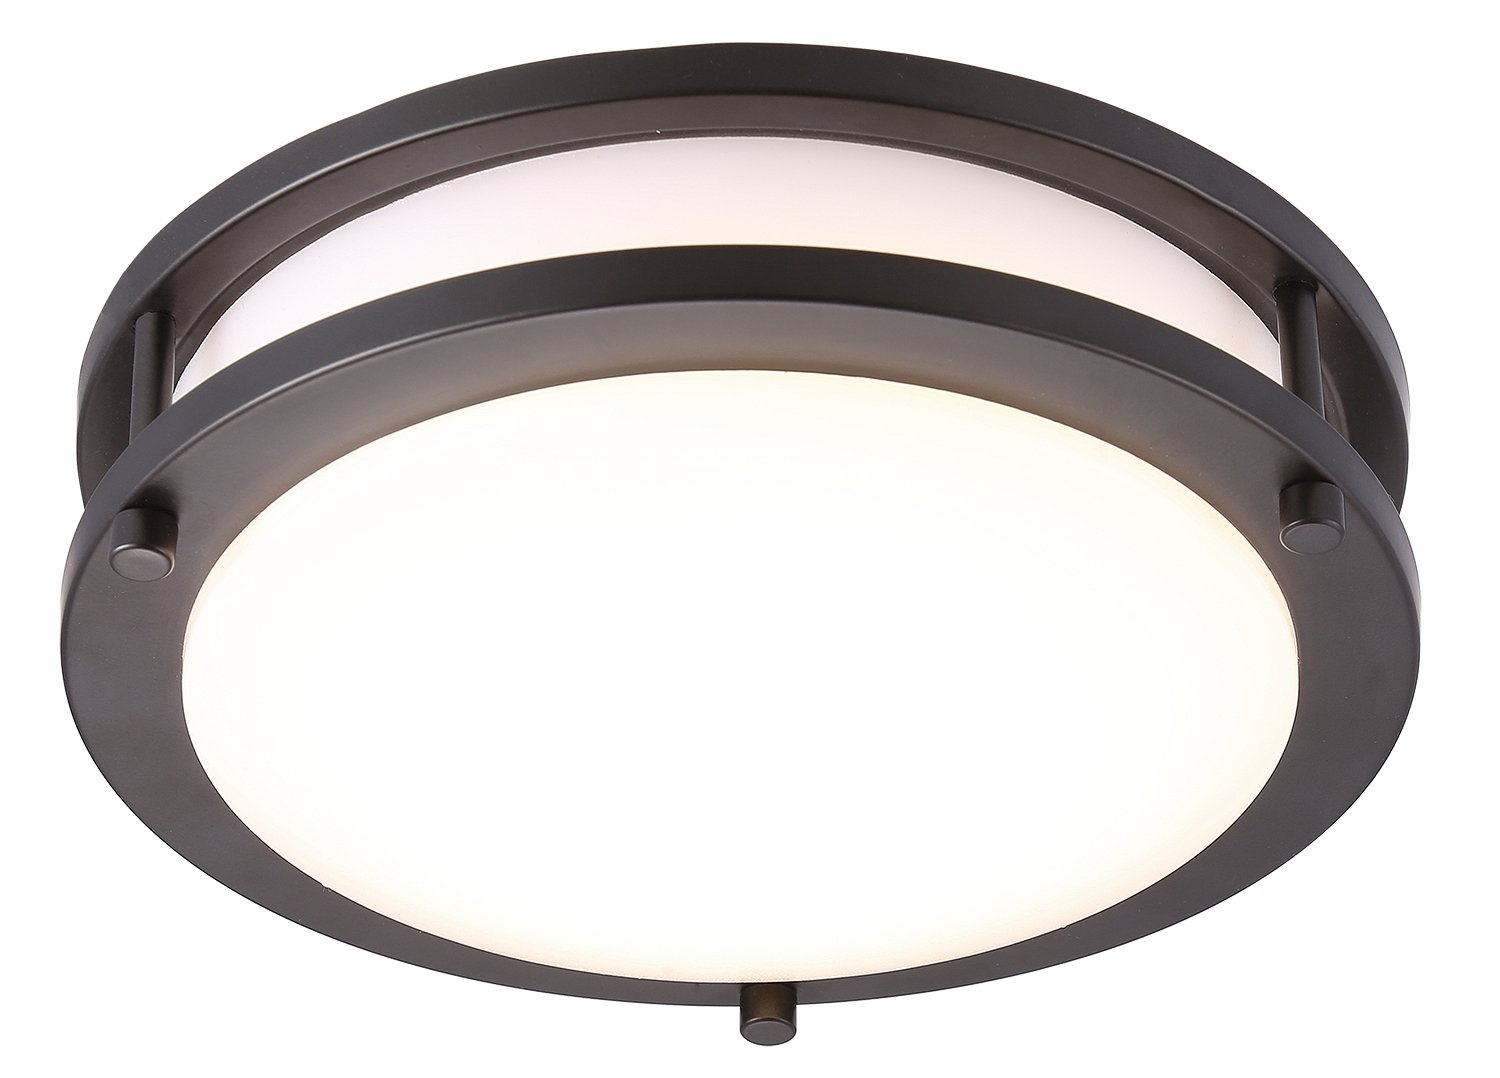 Cloudy Bay LED Flush Mount Ceiling Light,10 inch,17W(120W Equivalent) Dimmable 1150lm,3000K Warm White,Oil Rubbed Bronze Round Lighting Fixture for Kitchen,Hallway,Bathroom,Stairwell by CLOUDY BAY (Image #1)